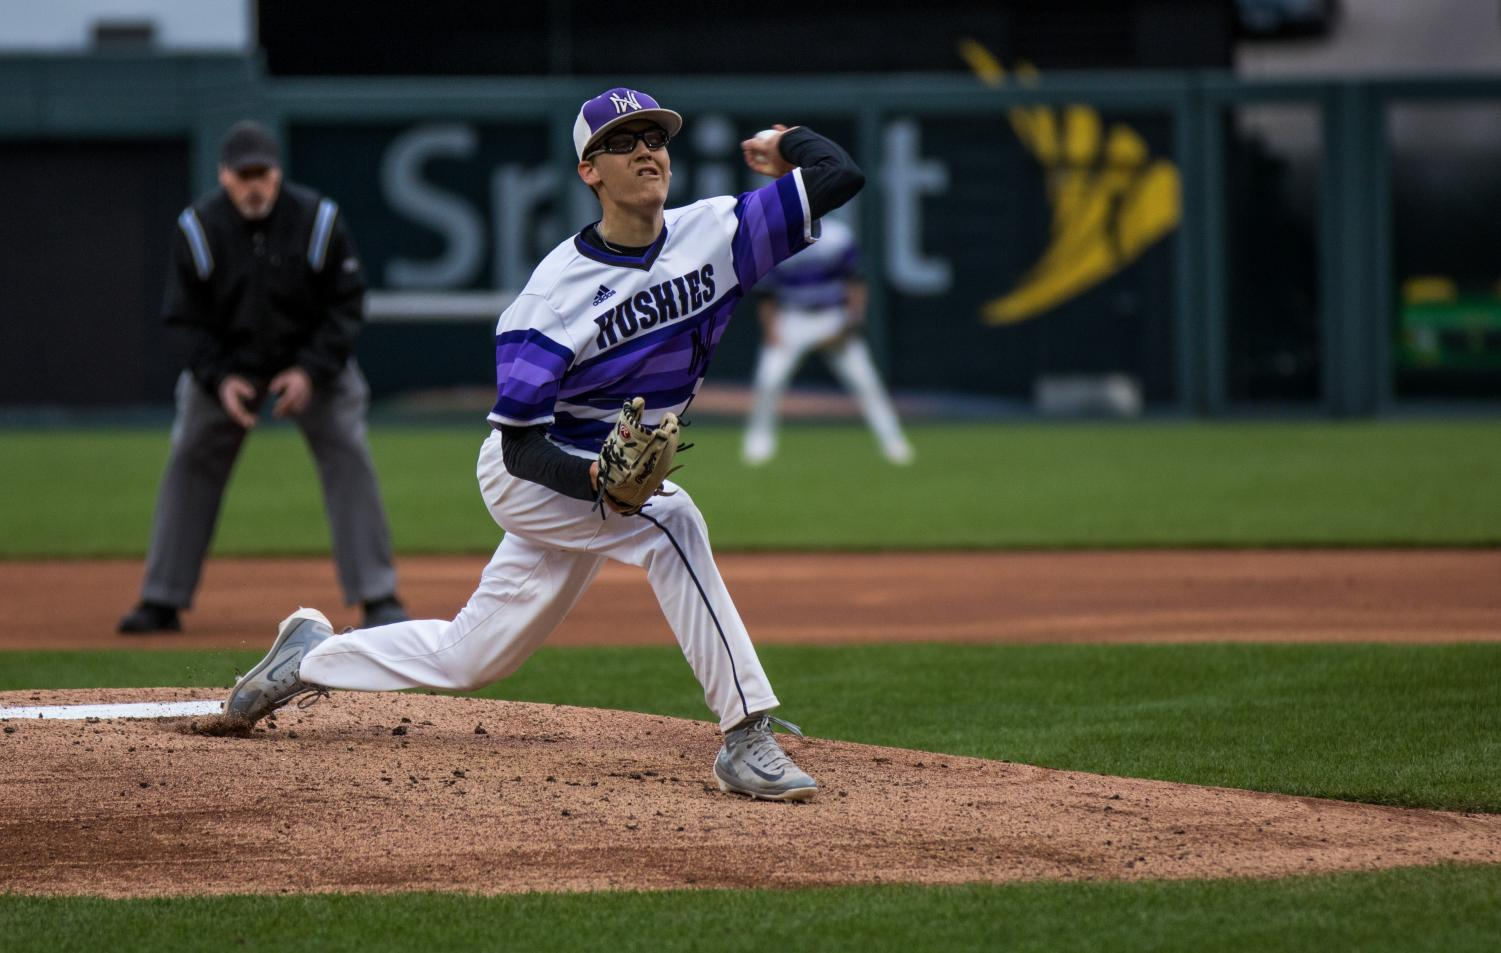 Senior Scott Duensing throws a pitch during the Huskies matchup with Summit Christian Academy at Kauffman Stadium April 21. Duensing threw a complete game and the Huskies defeated the Eagles, 6-2.